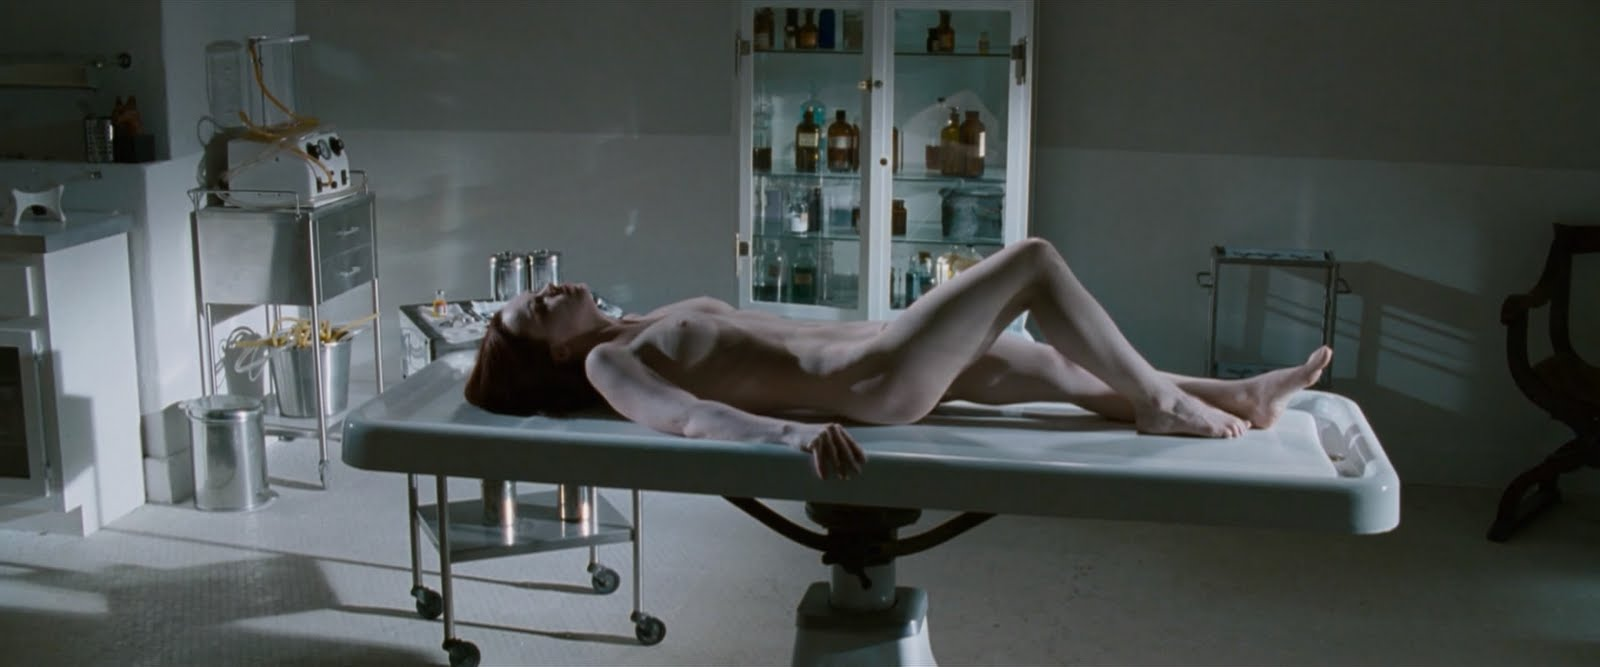 JT.ChristinaRicci.AfterLifeHD.avi snapshot 02.18 %255B2010.08.09 20.05.19%255D I'm not asking what's happened to Christina Ricci because I want to find ...